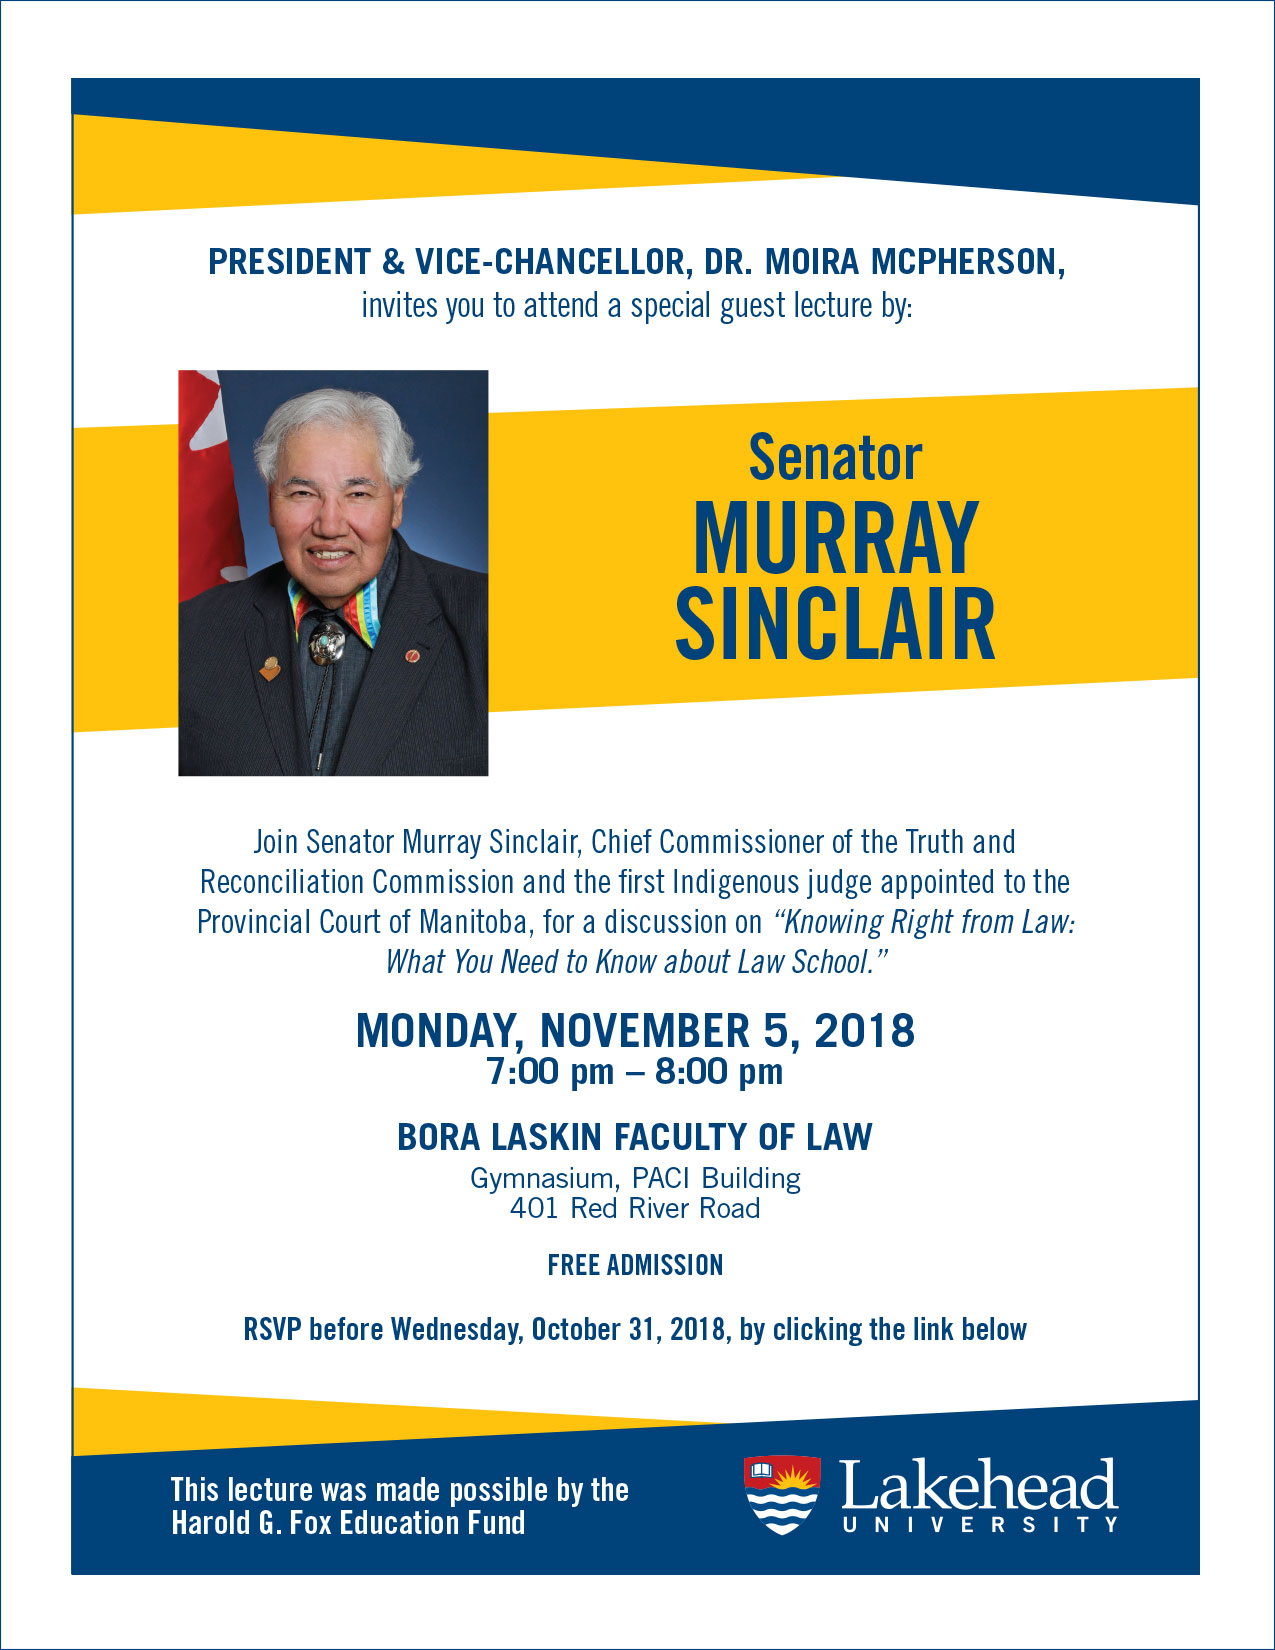 Poster for the upcoming lecture event featuring Murray Sinclair.